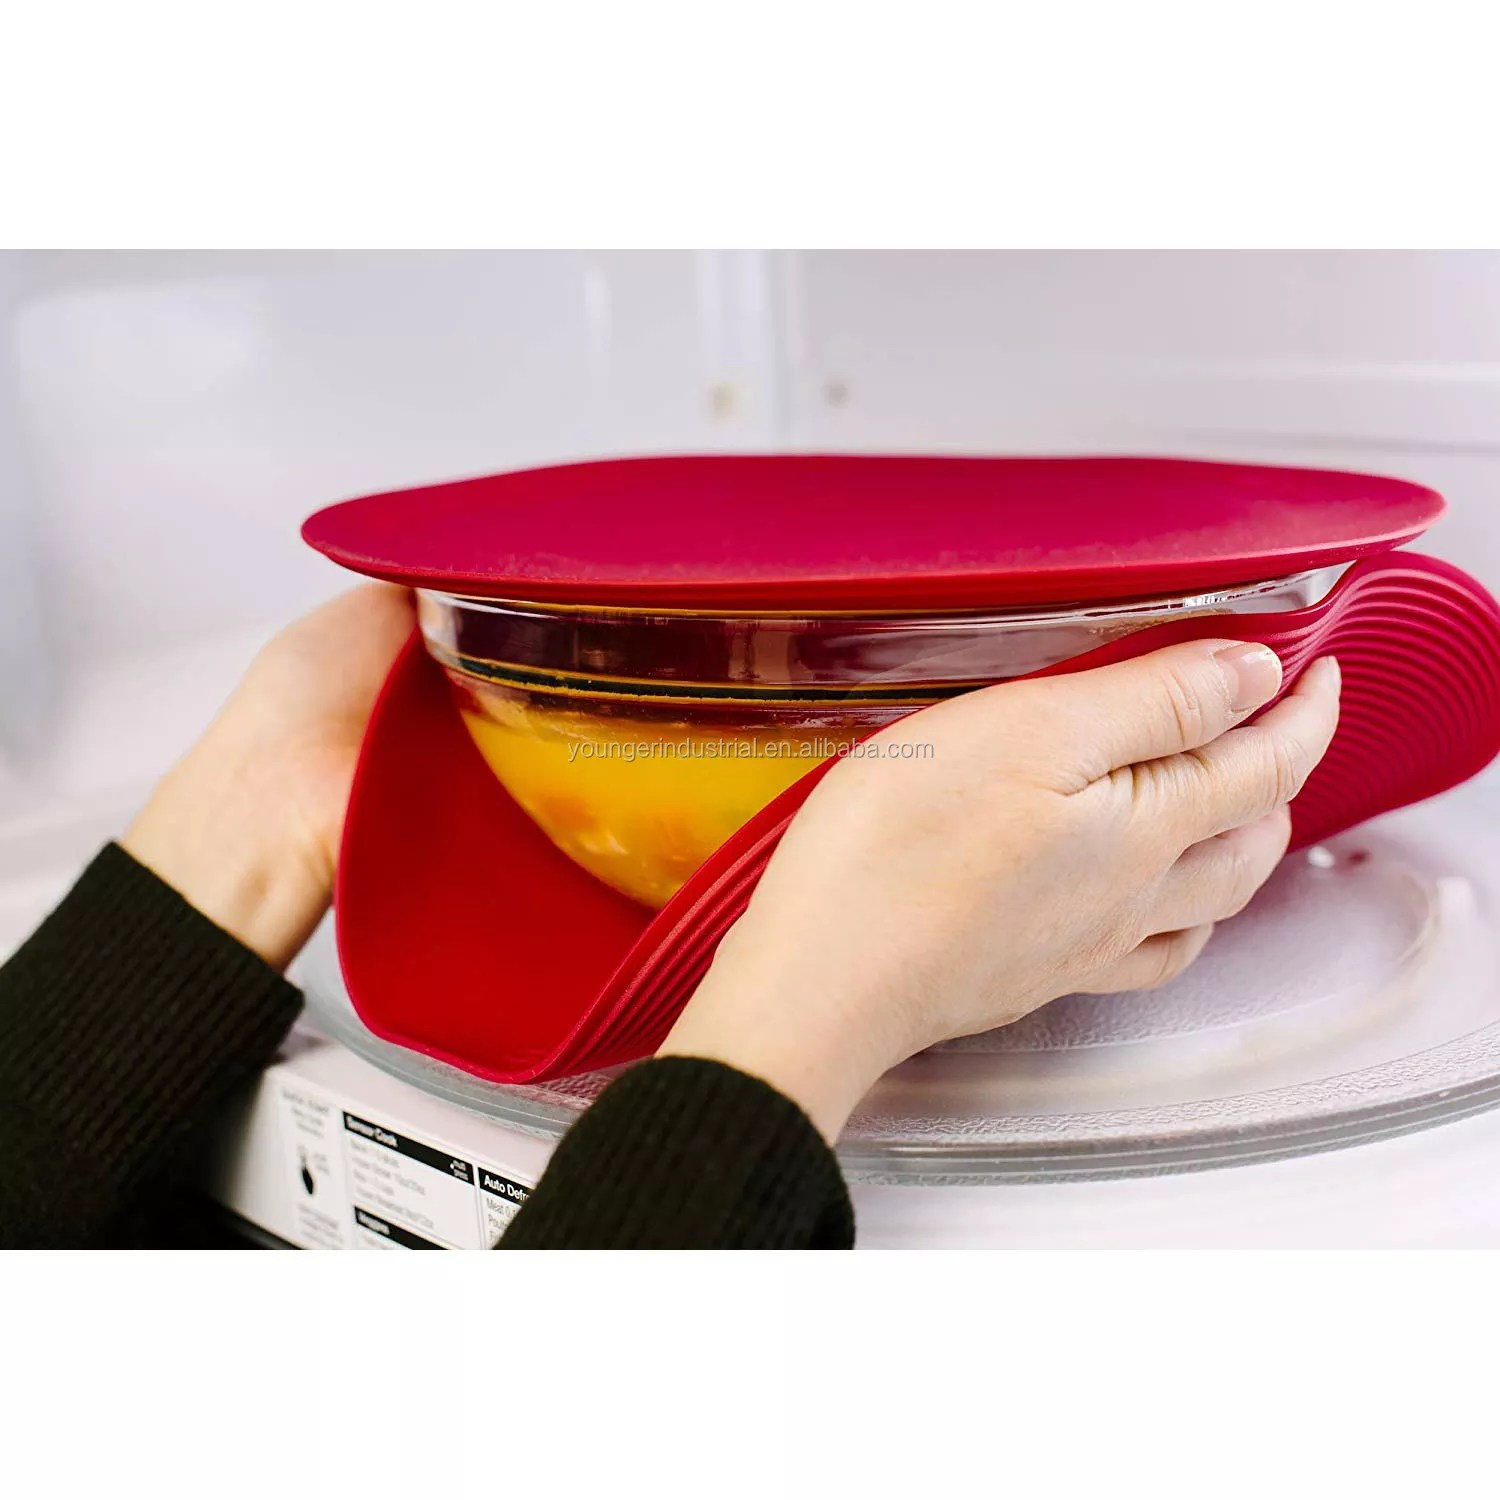 multi purpose silicone microwave mat as seen on shark tank splatter guard trivet hot pad pot holder minimize mess set of 2 buy silicone microwave